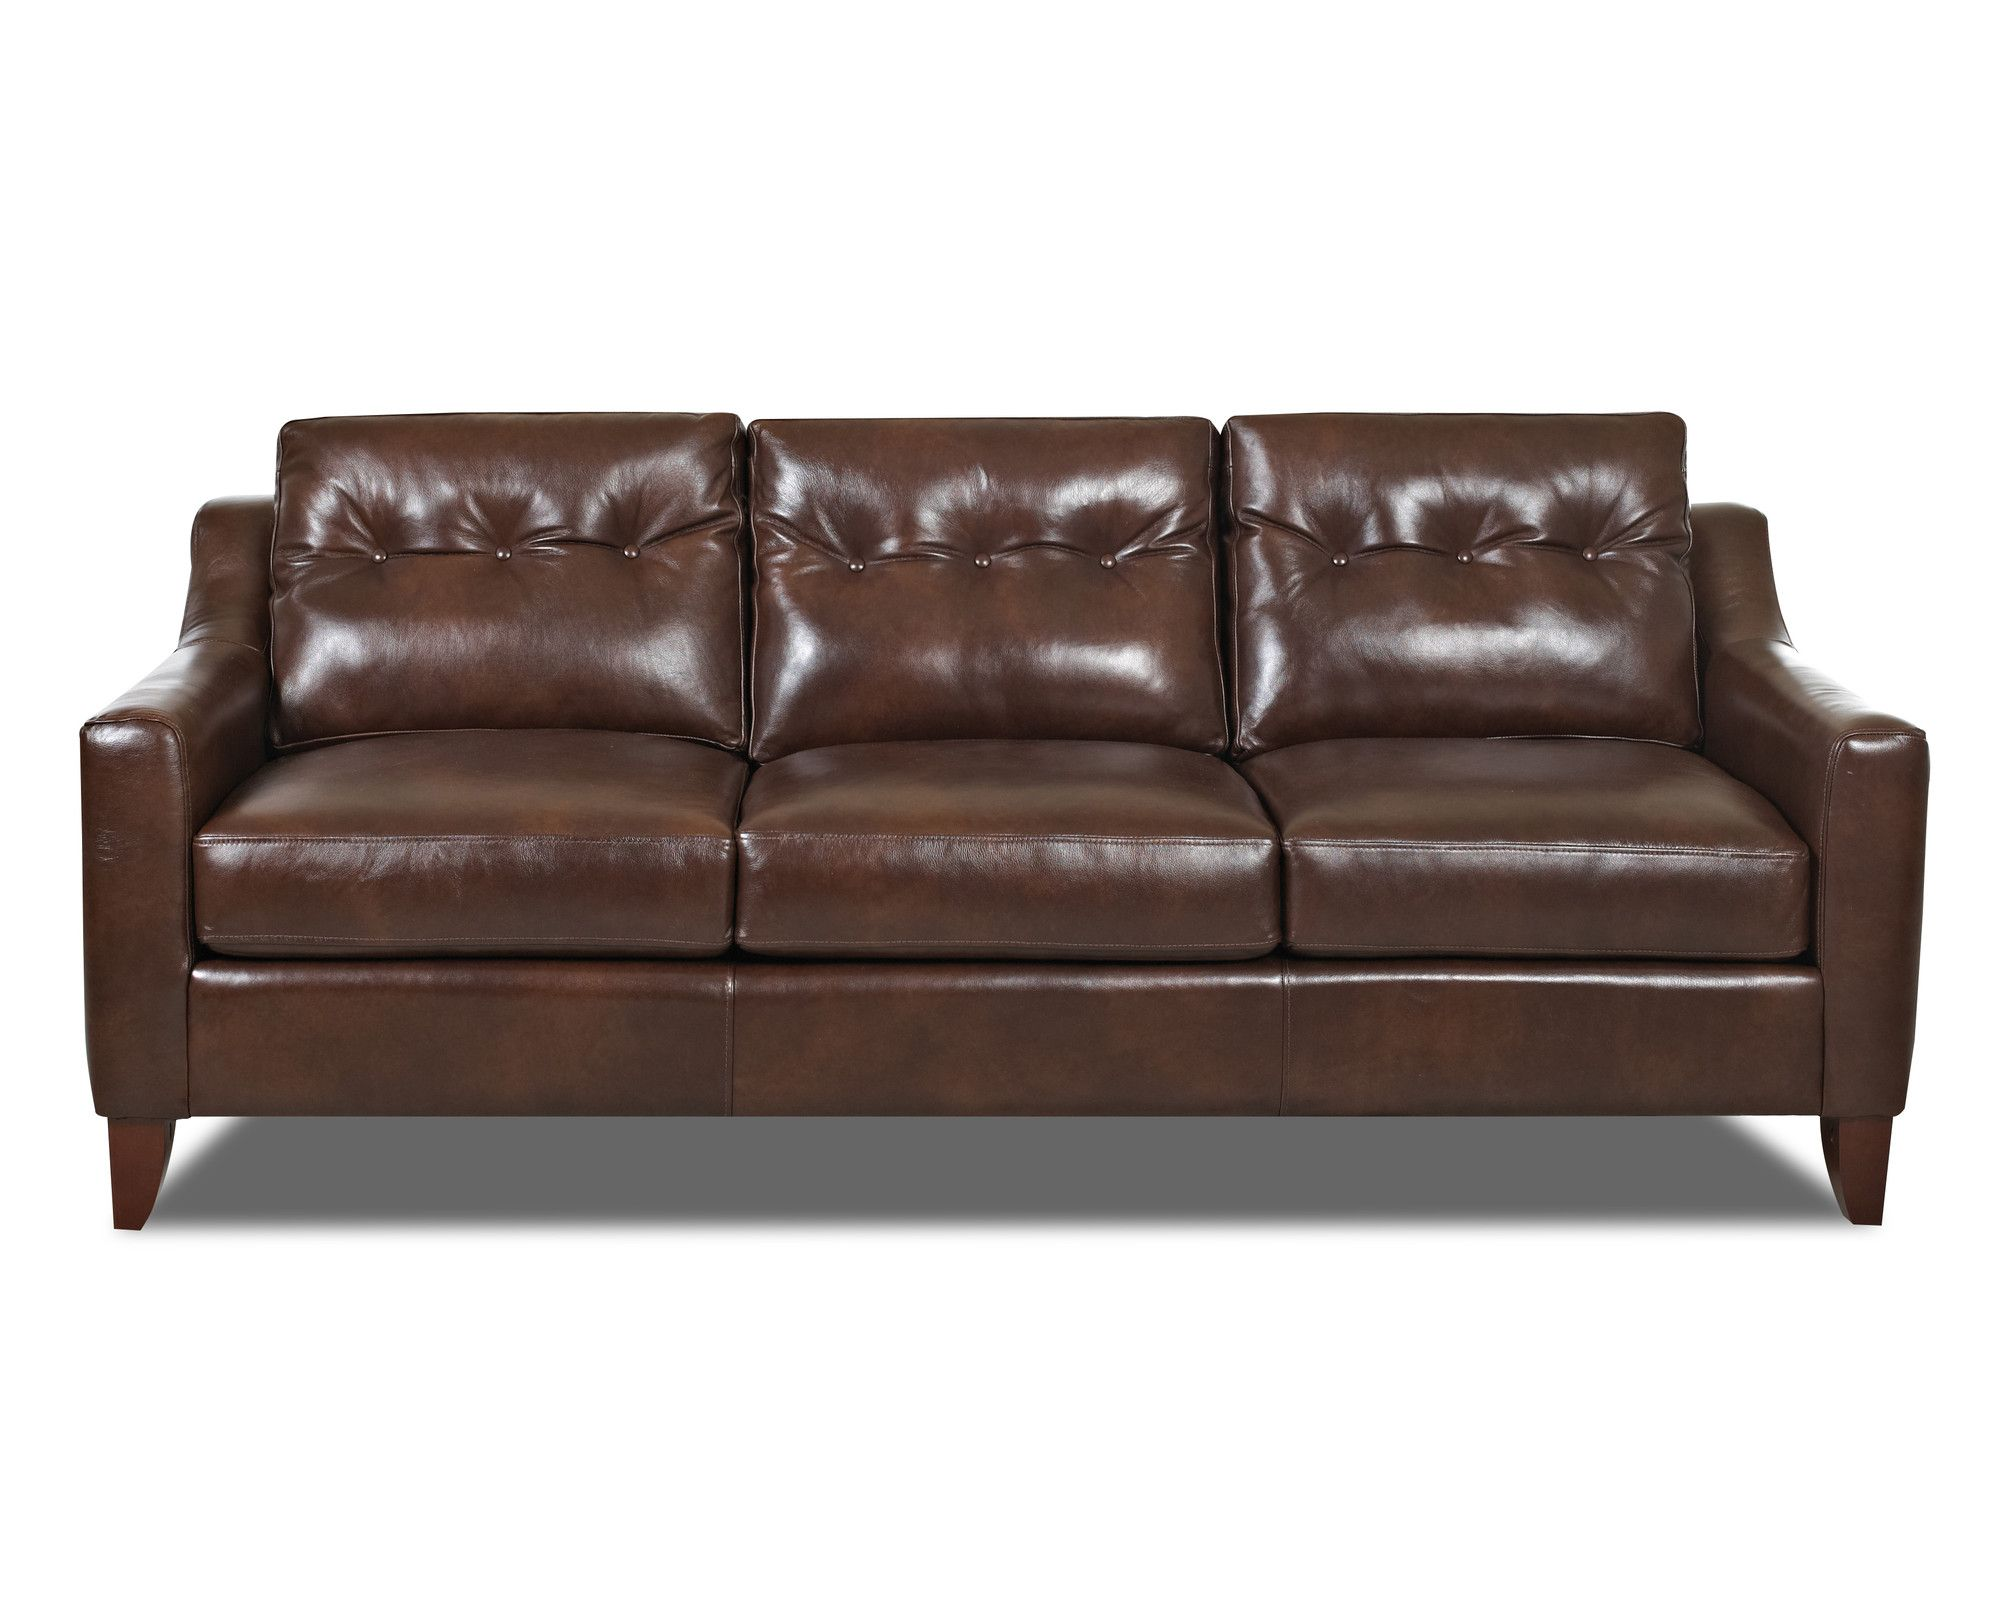 Apartment Sofa Wayfair